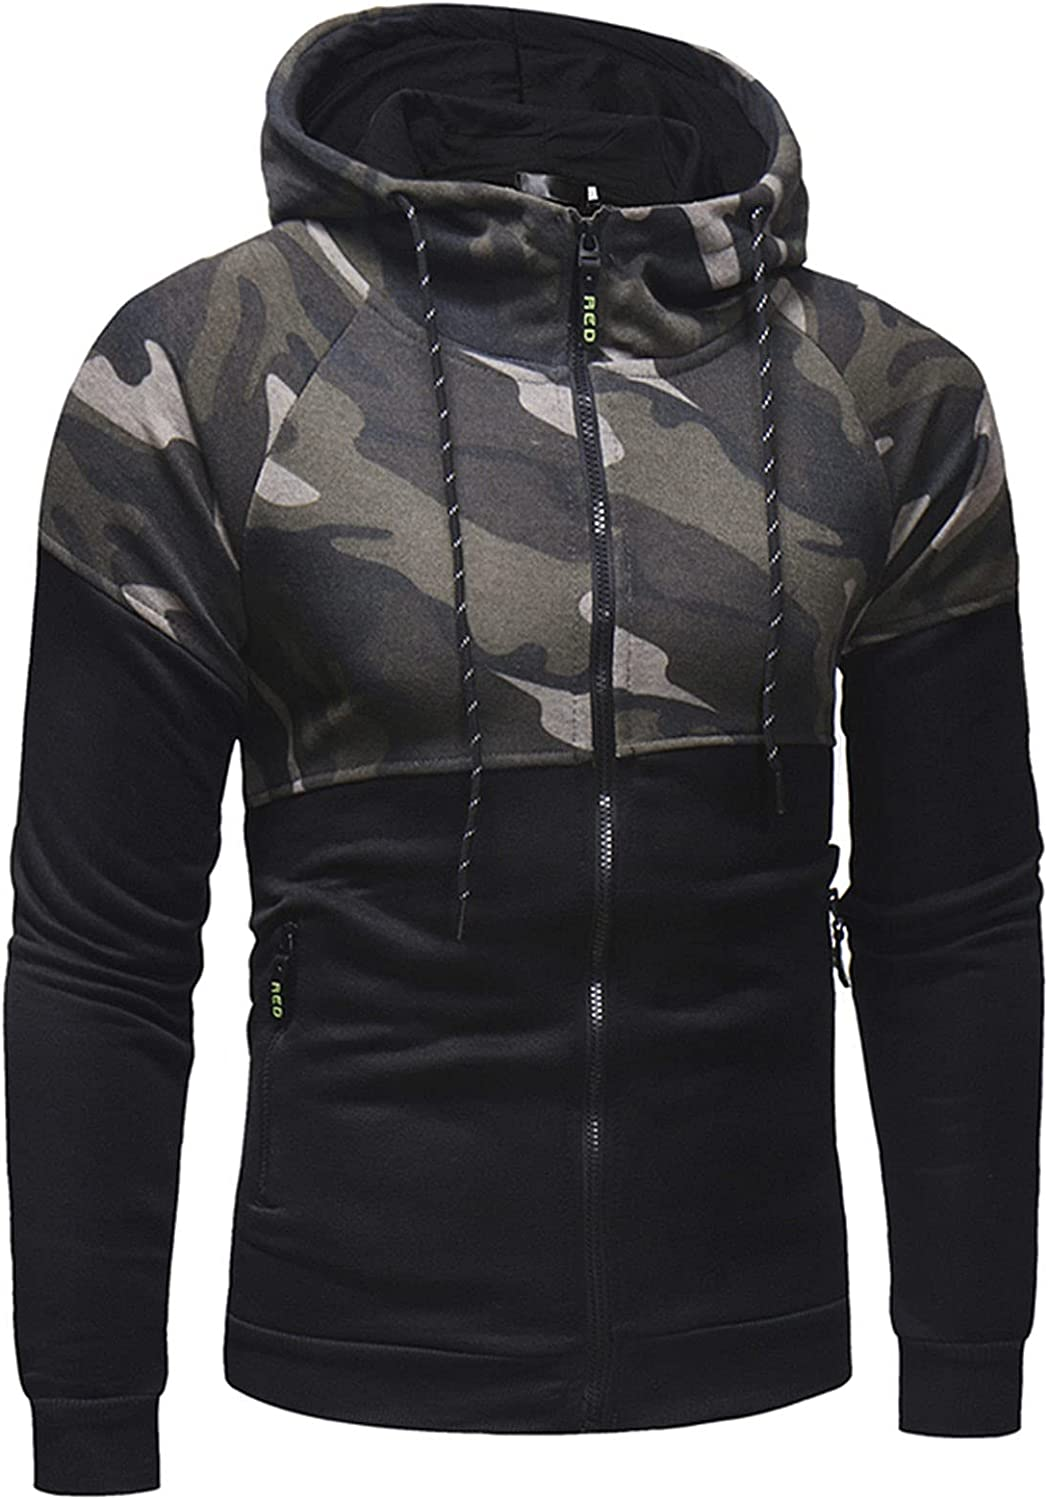 XXBR Camo Hoodies for Mens, Fall Zipper Stitching Hooded Sweatshirts Drawstring Workout Fitness Athletic Casual Jackets